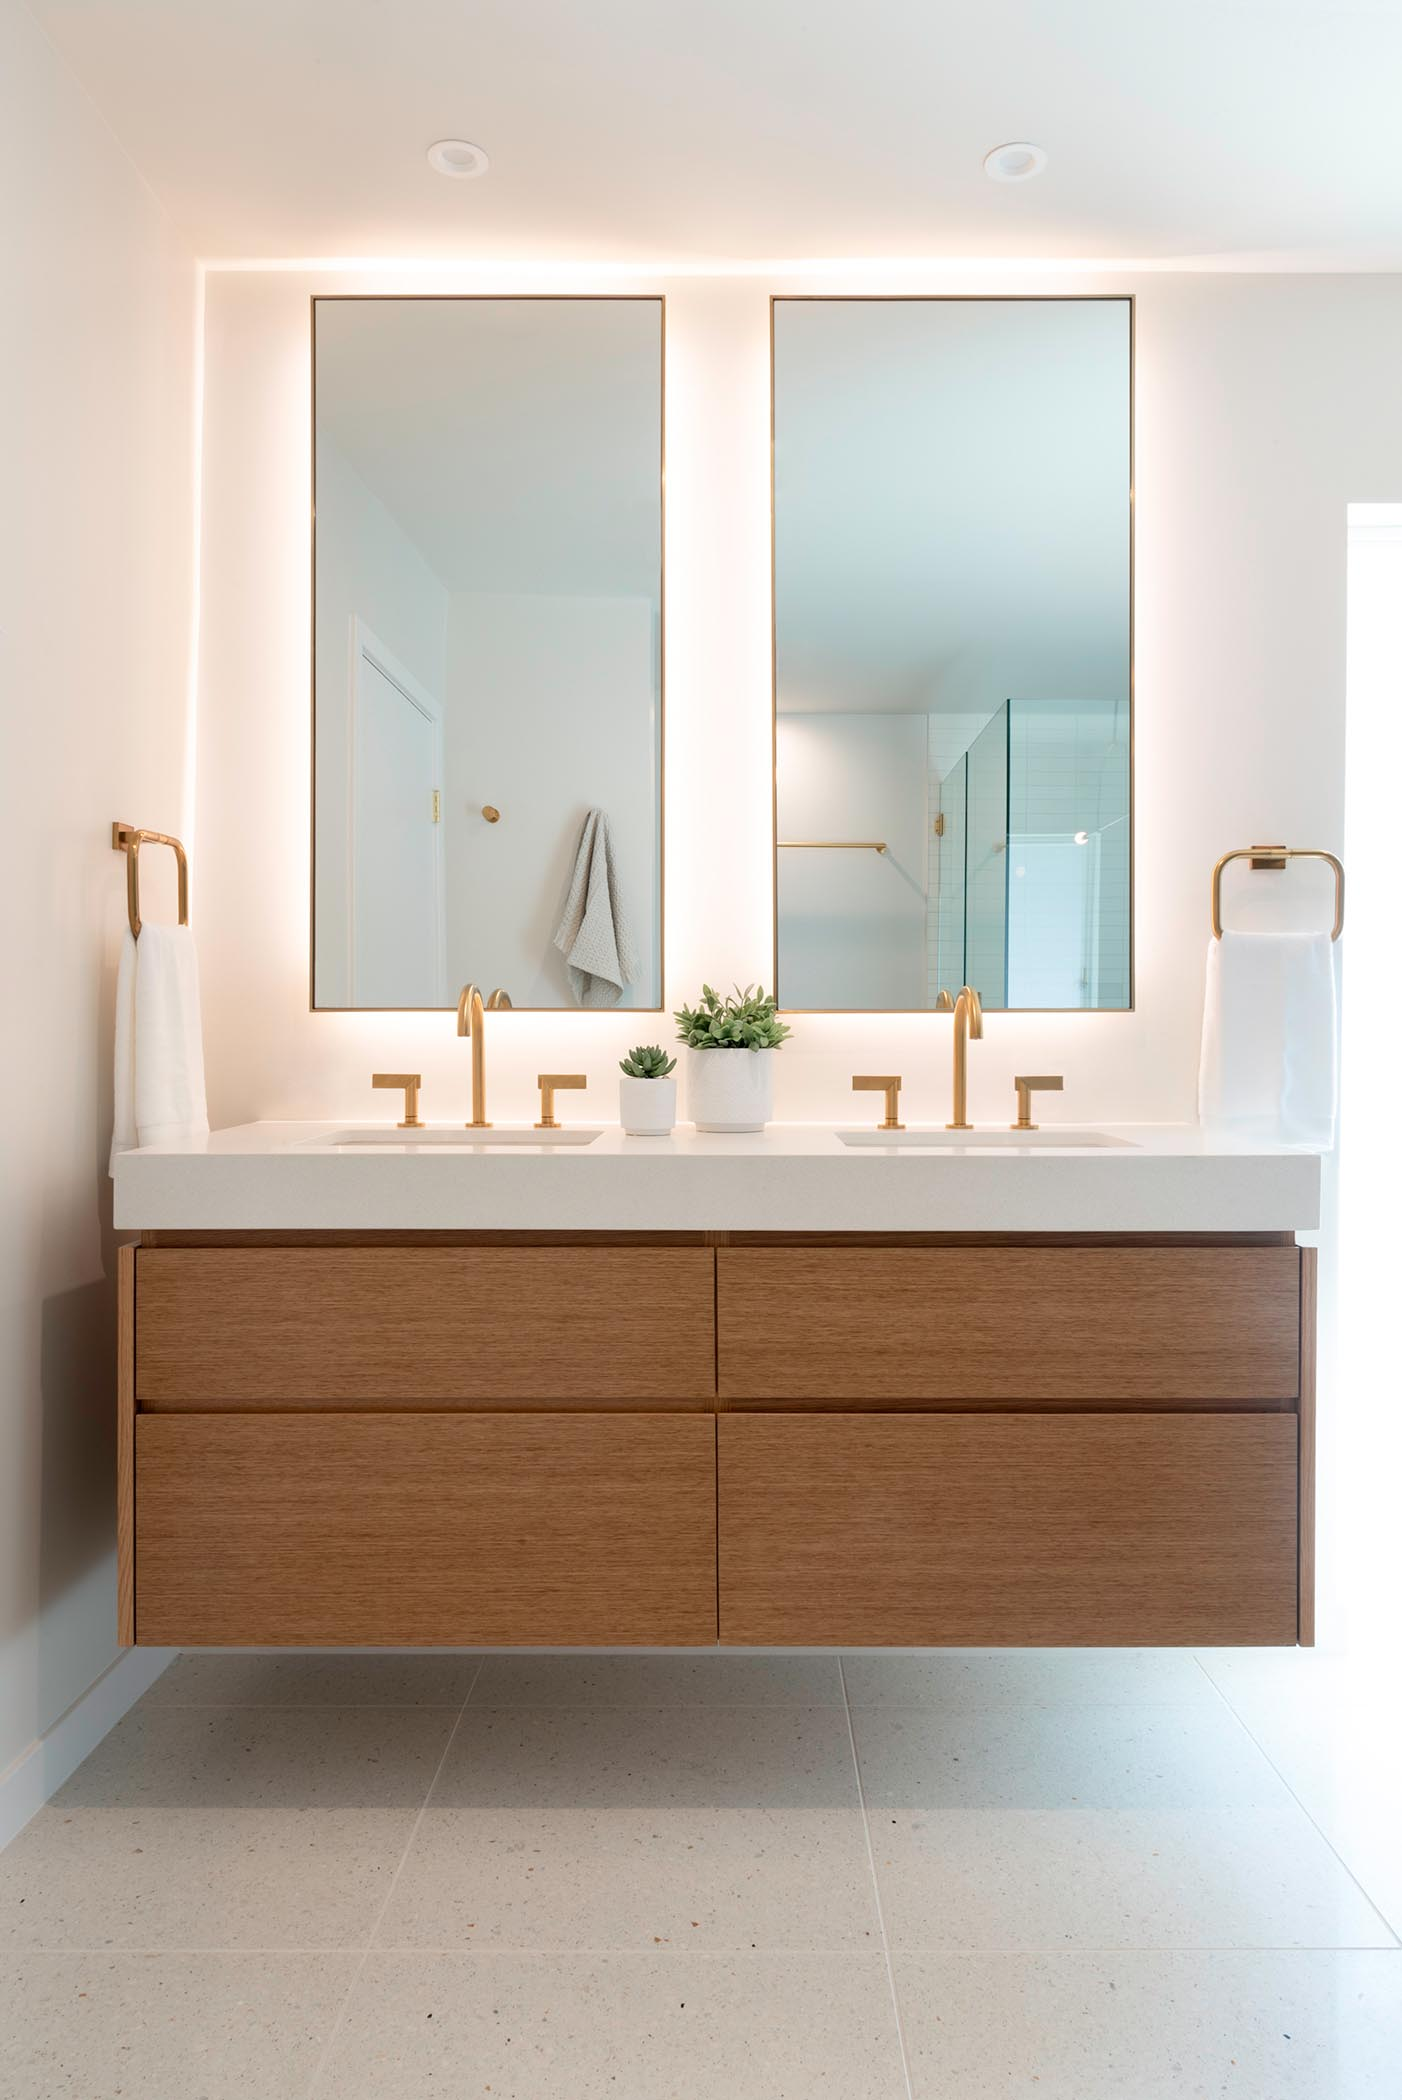 This modern bathroom includes a wall mounted wood vanity with custom backlit mirrors, and brass fixtures.